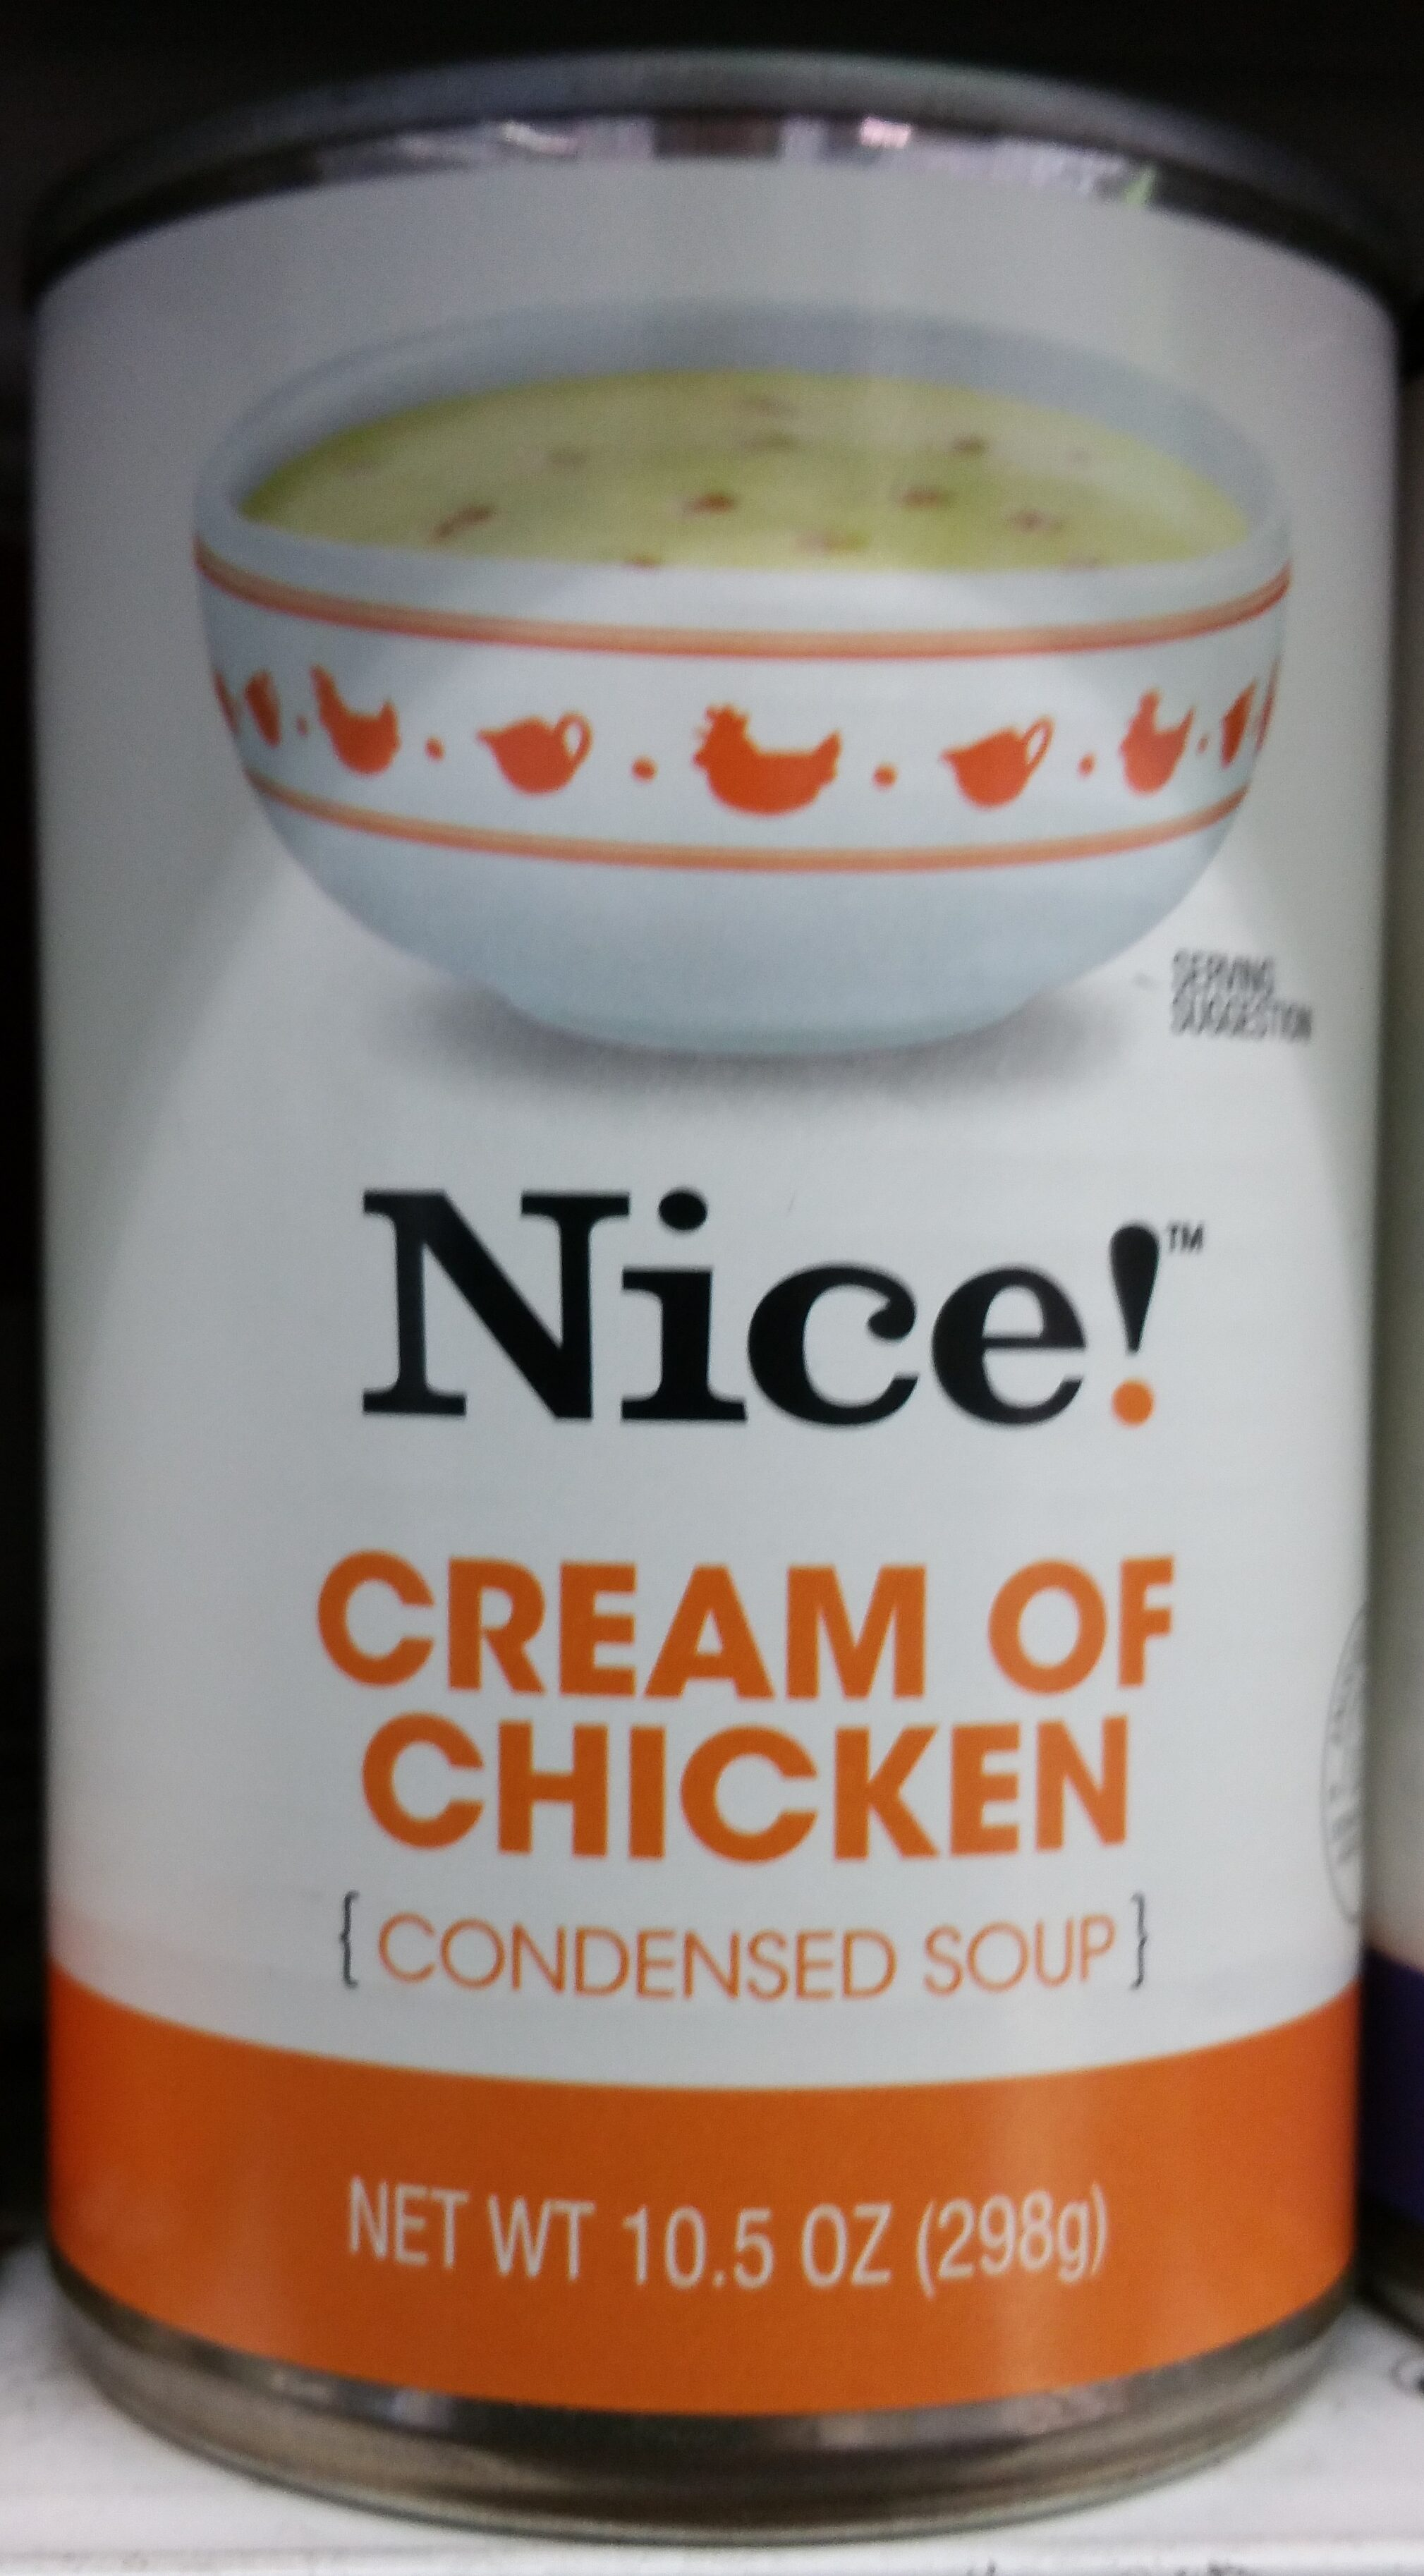 Nice! Cream of Chicken Soup - Product